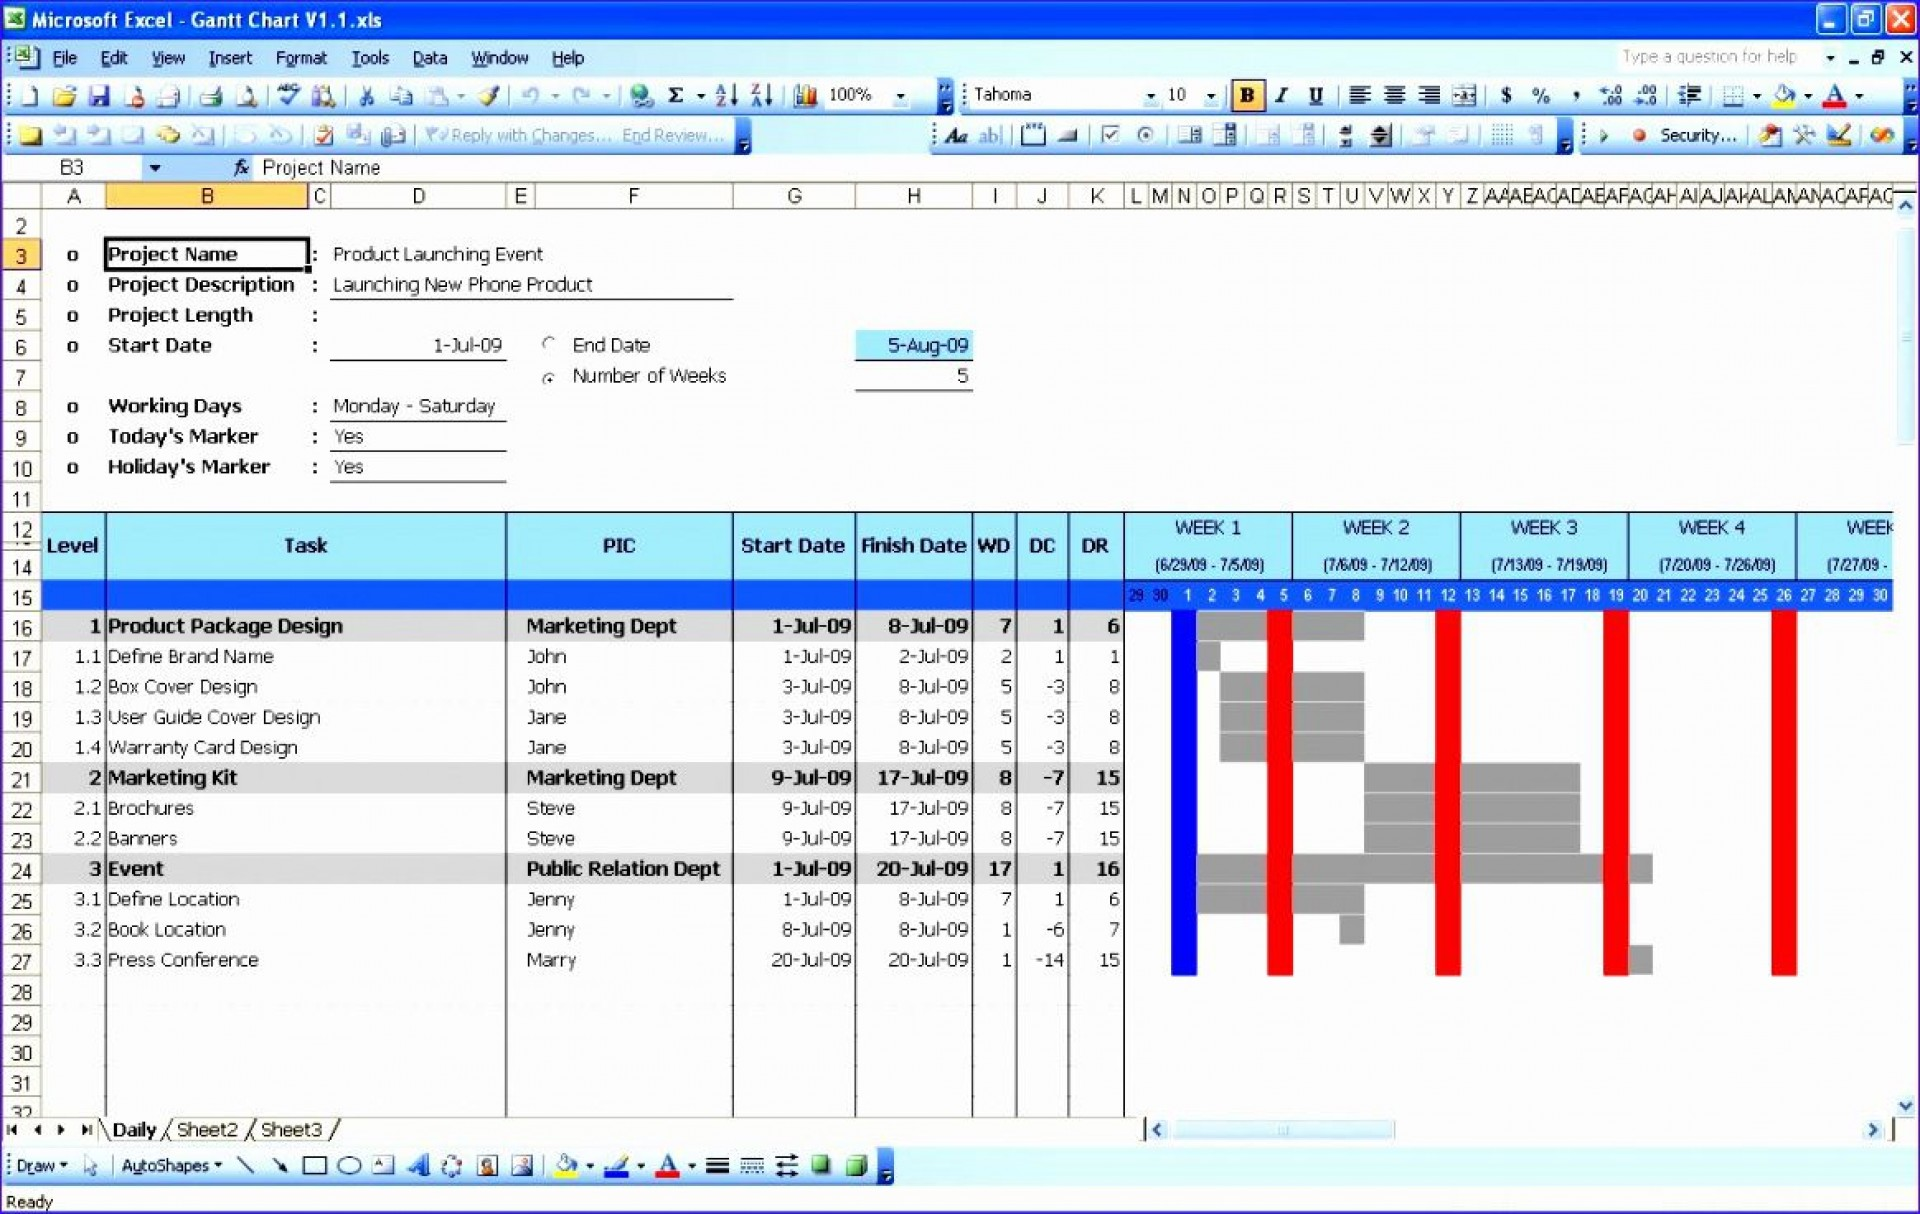 004 Stunning Gantt Chart Template In Excel 2020 Concept  Free1920